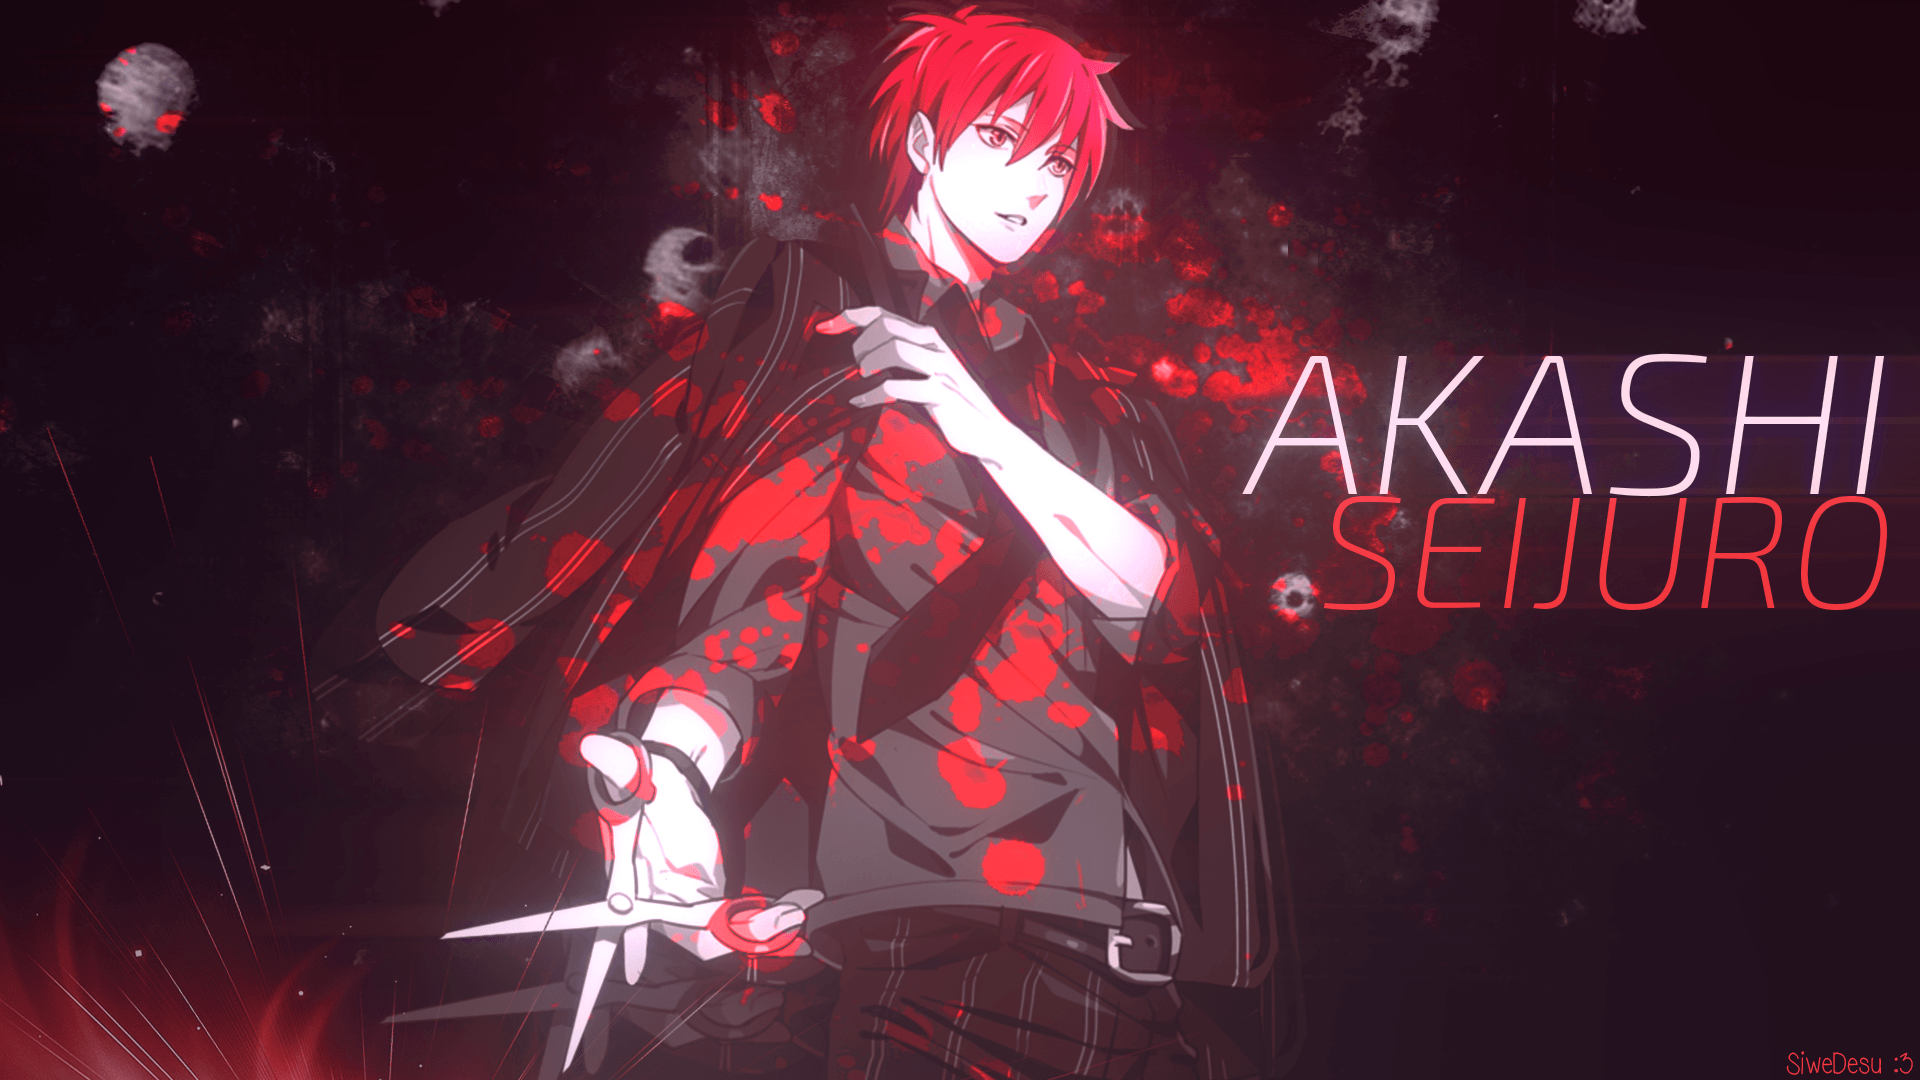 Akashi Seijuro Hd Wallpaper Background Image 1920x1080 Id 1053917 Wallpaper Abyss